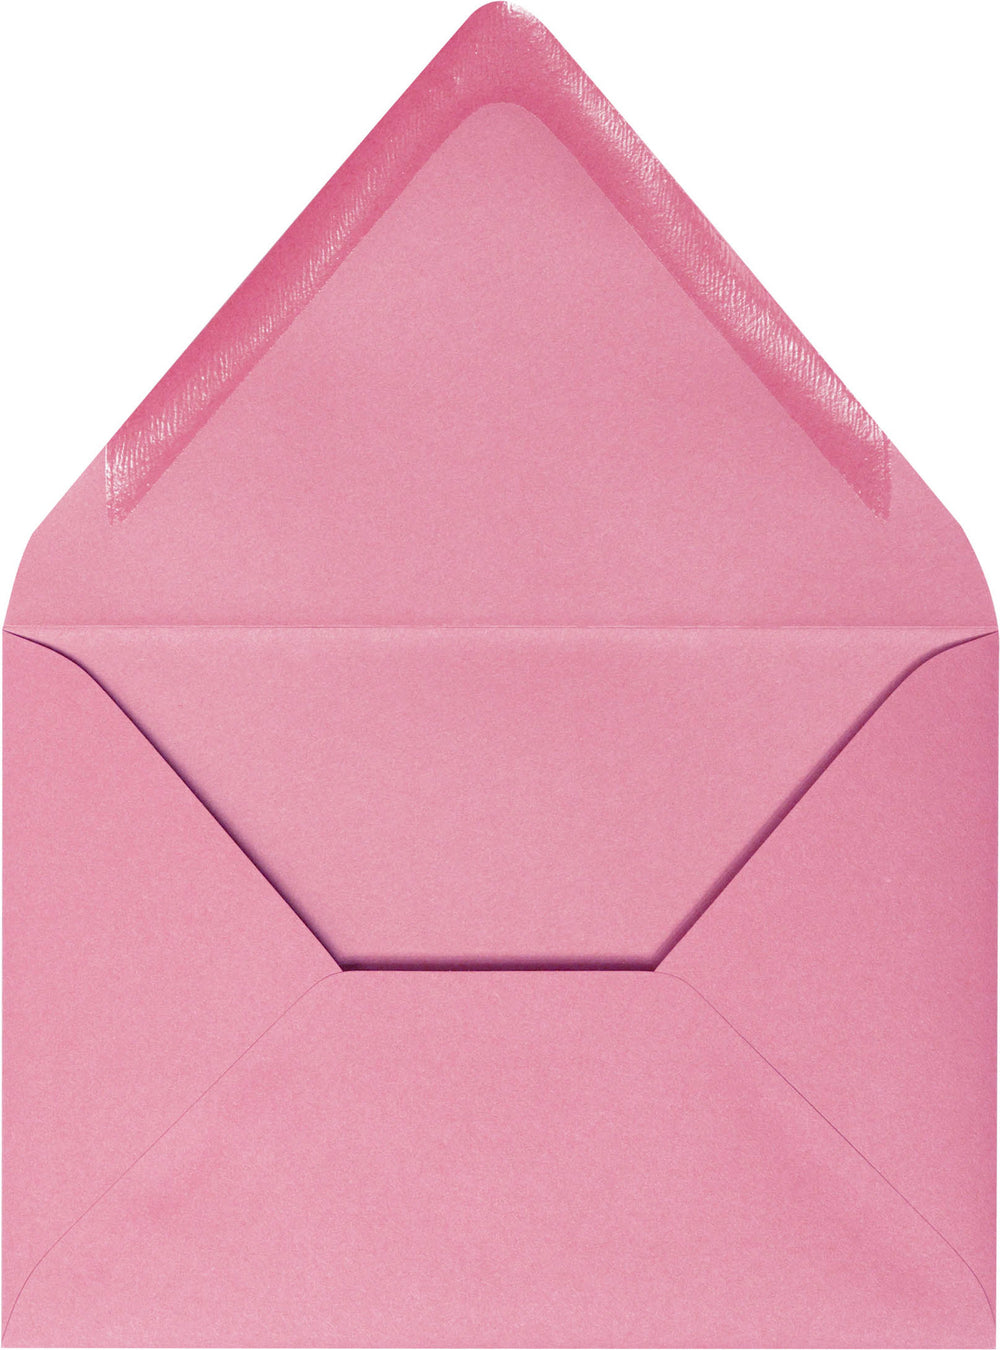 "A-2 Cotton Candy Pink Solid Euro Flap Envelopes (4 3/8"" x 5 3/4"")"